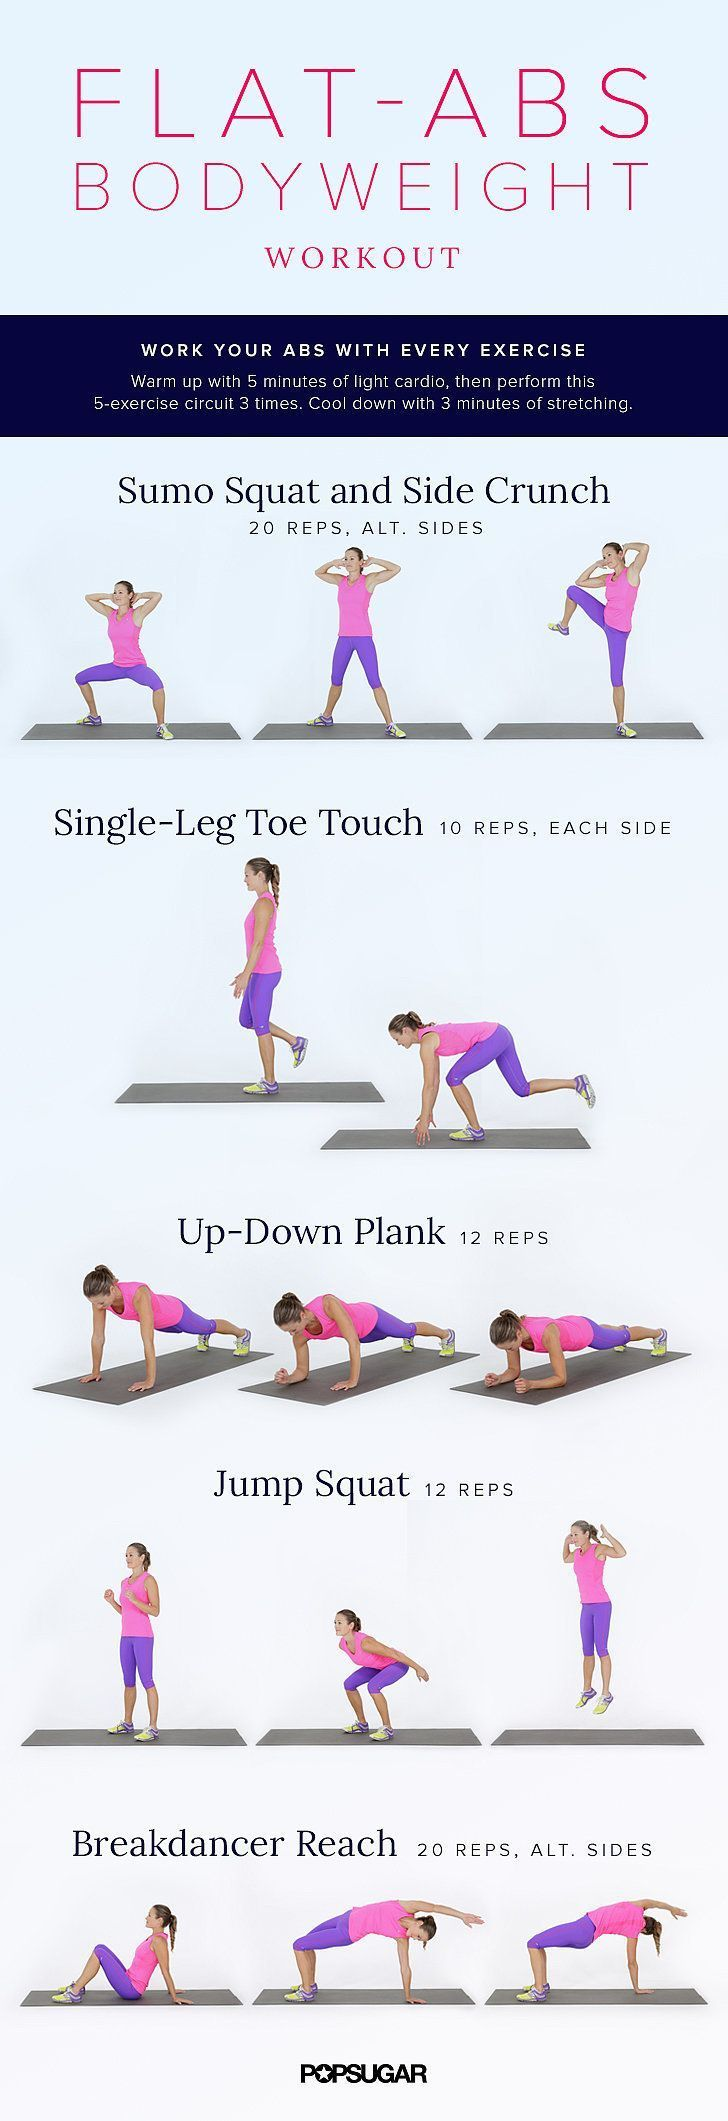 Flat Abs Bodyweight Workout Bodyweight Workout Fun Workouts Exercise